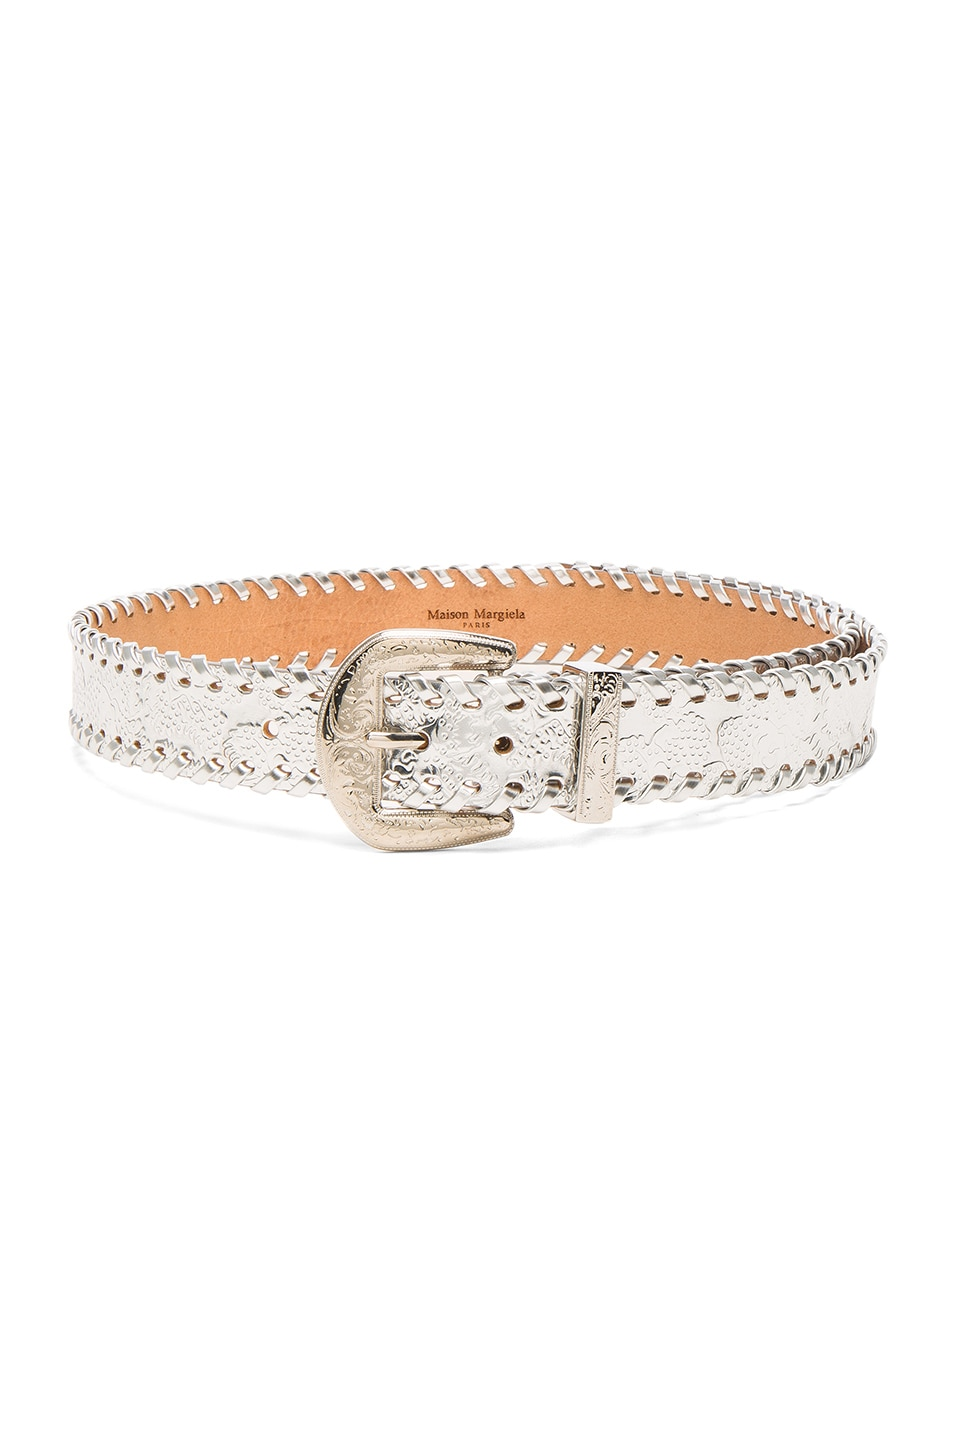 Image 1 of Maison Margiela Stitched Belt in Silver